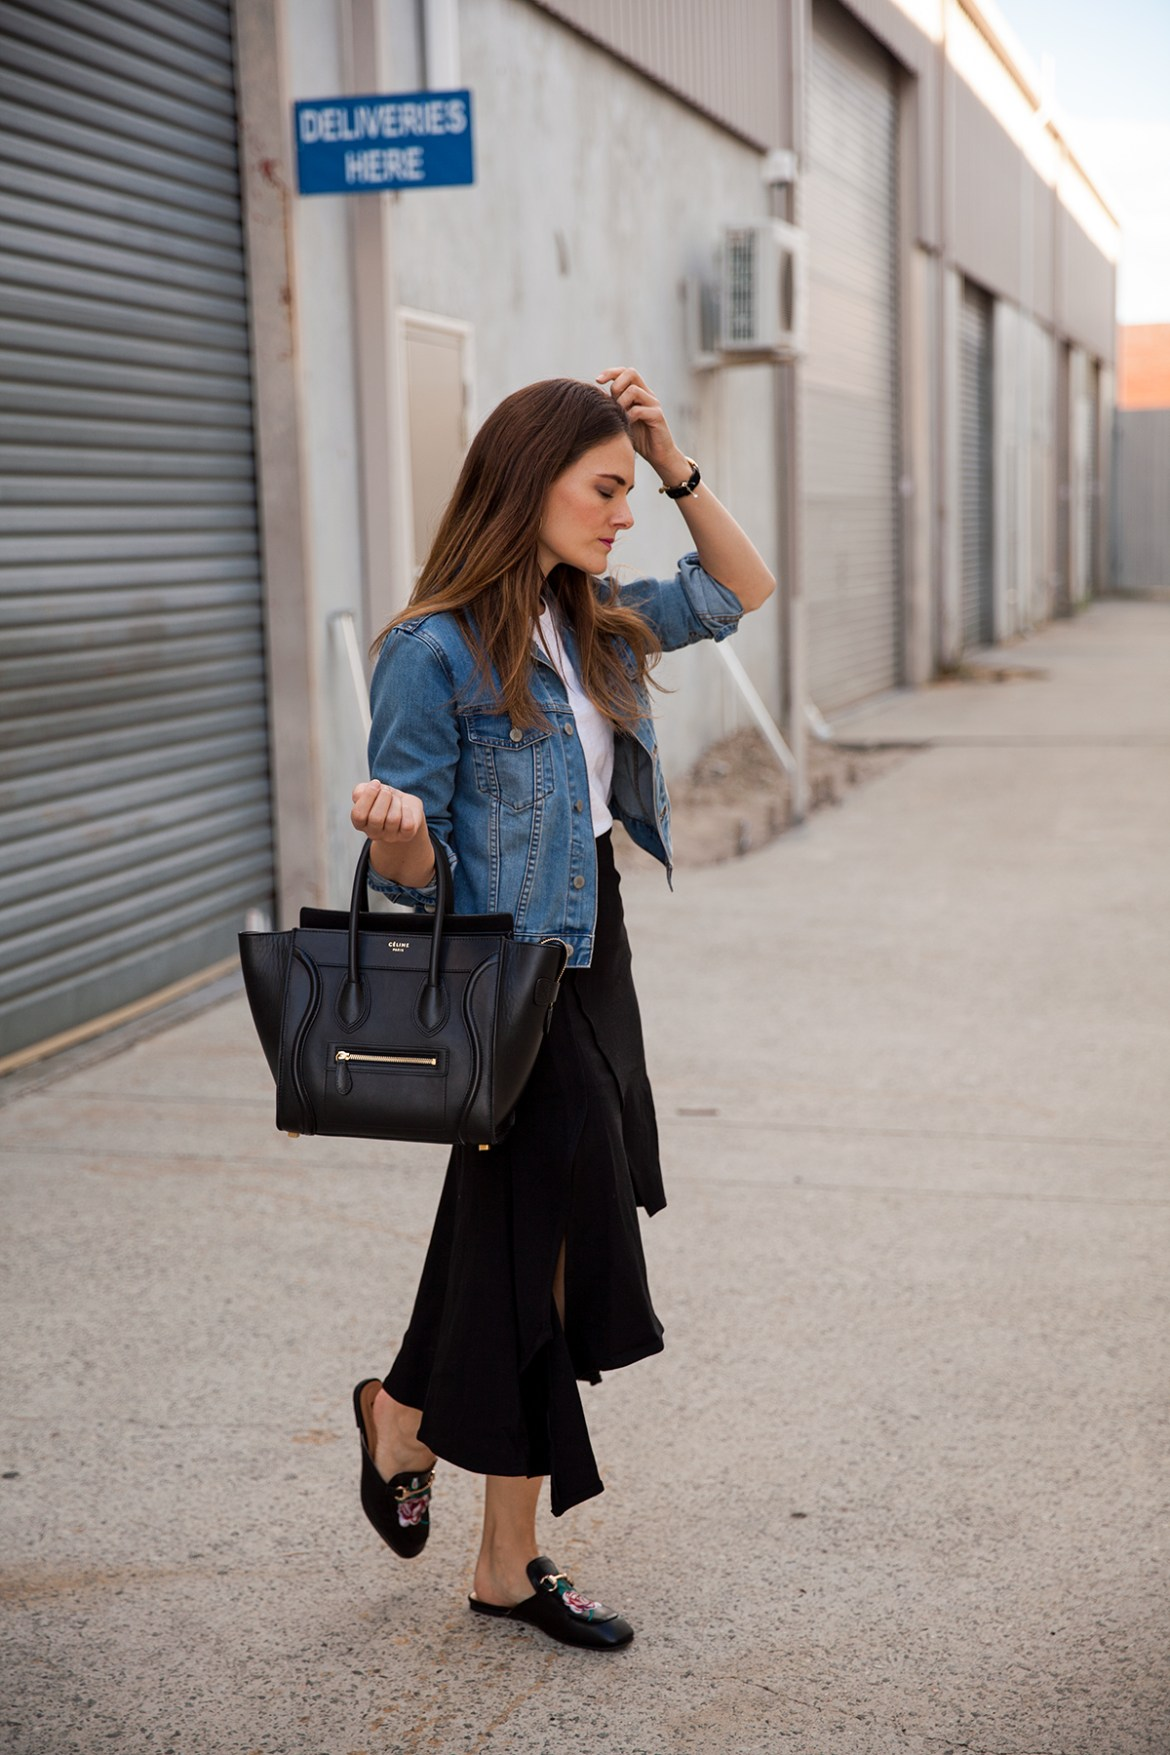 midi skirts, five reasons you need one, denim jacket, Celine tote, Hello Parry midi skirt worn by Inspiring Wit fashion blogger Jenelle Witty